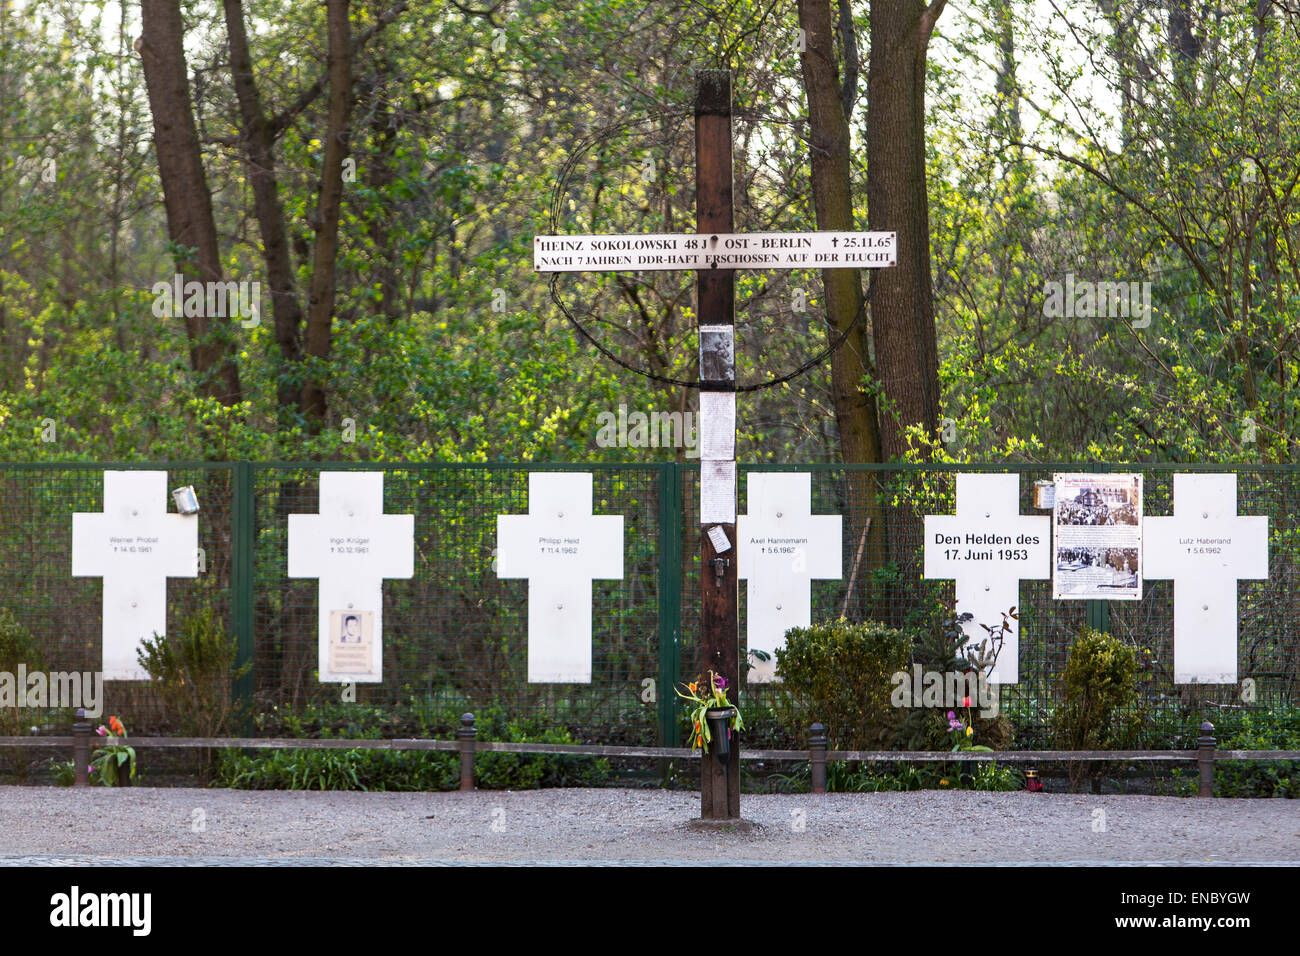 Memorial for the killed people at the Berlin wall, - Stock Image